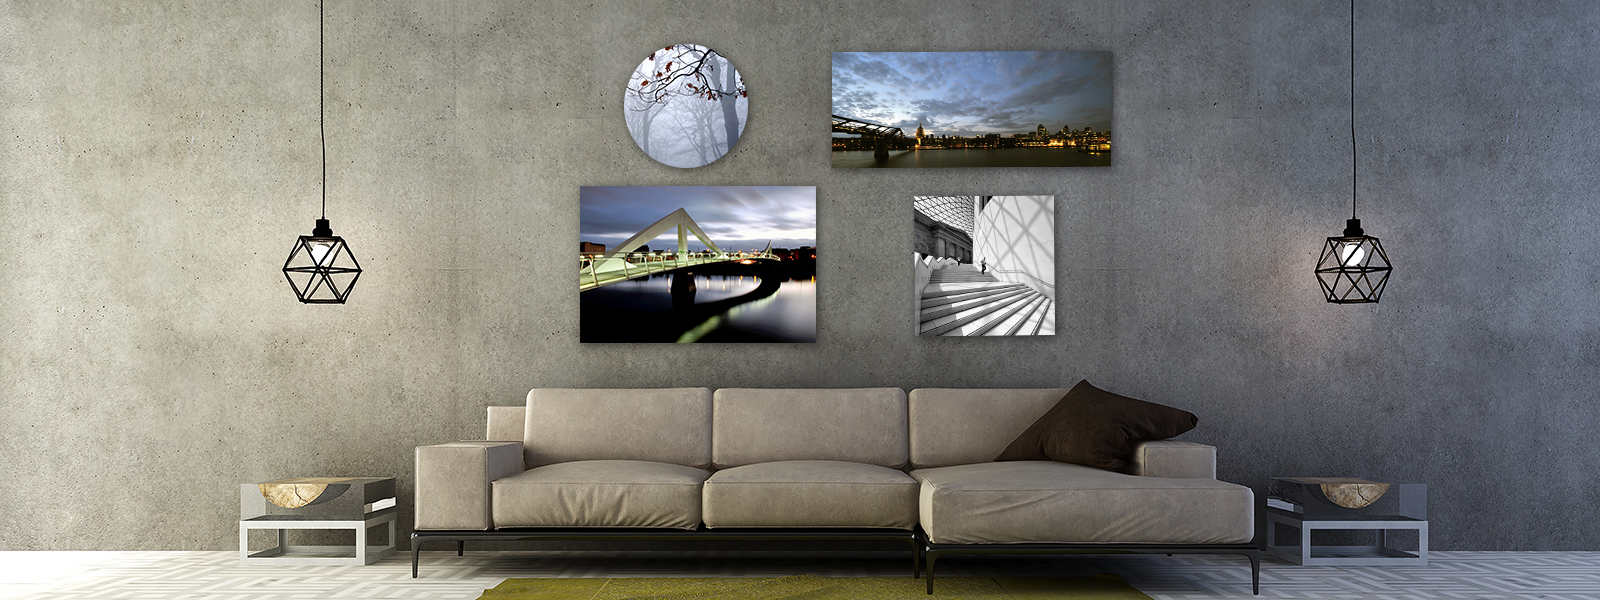 Various photo products on wall